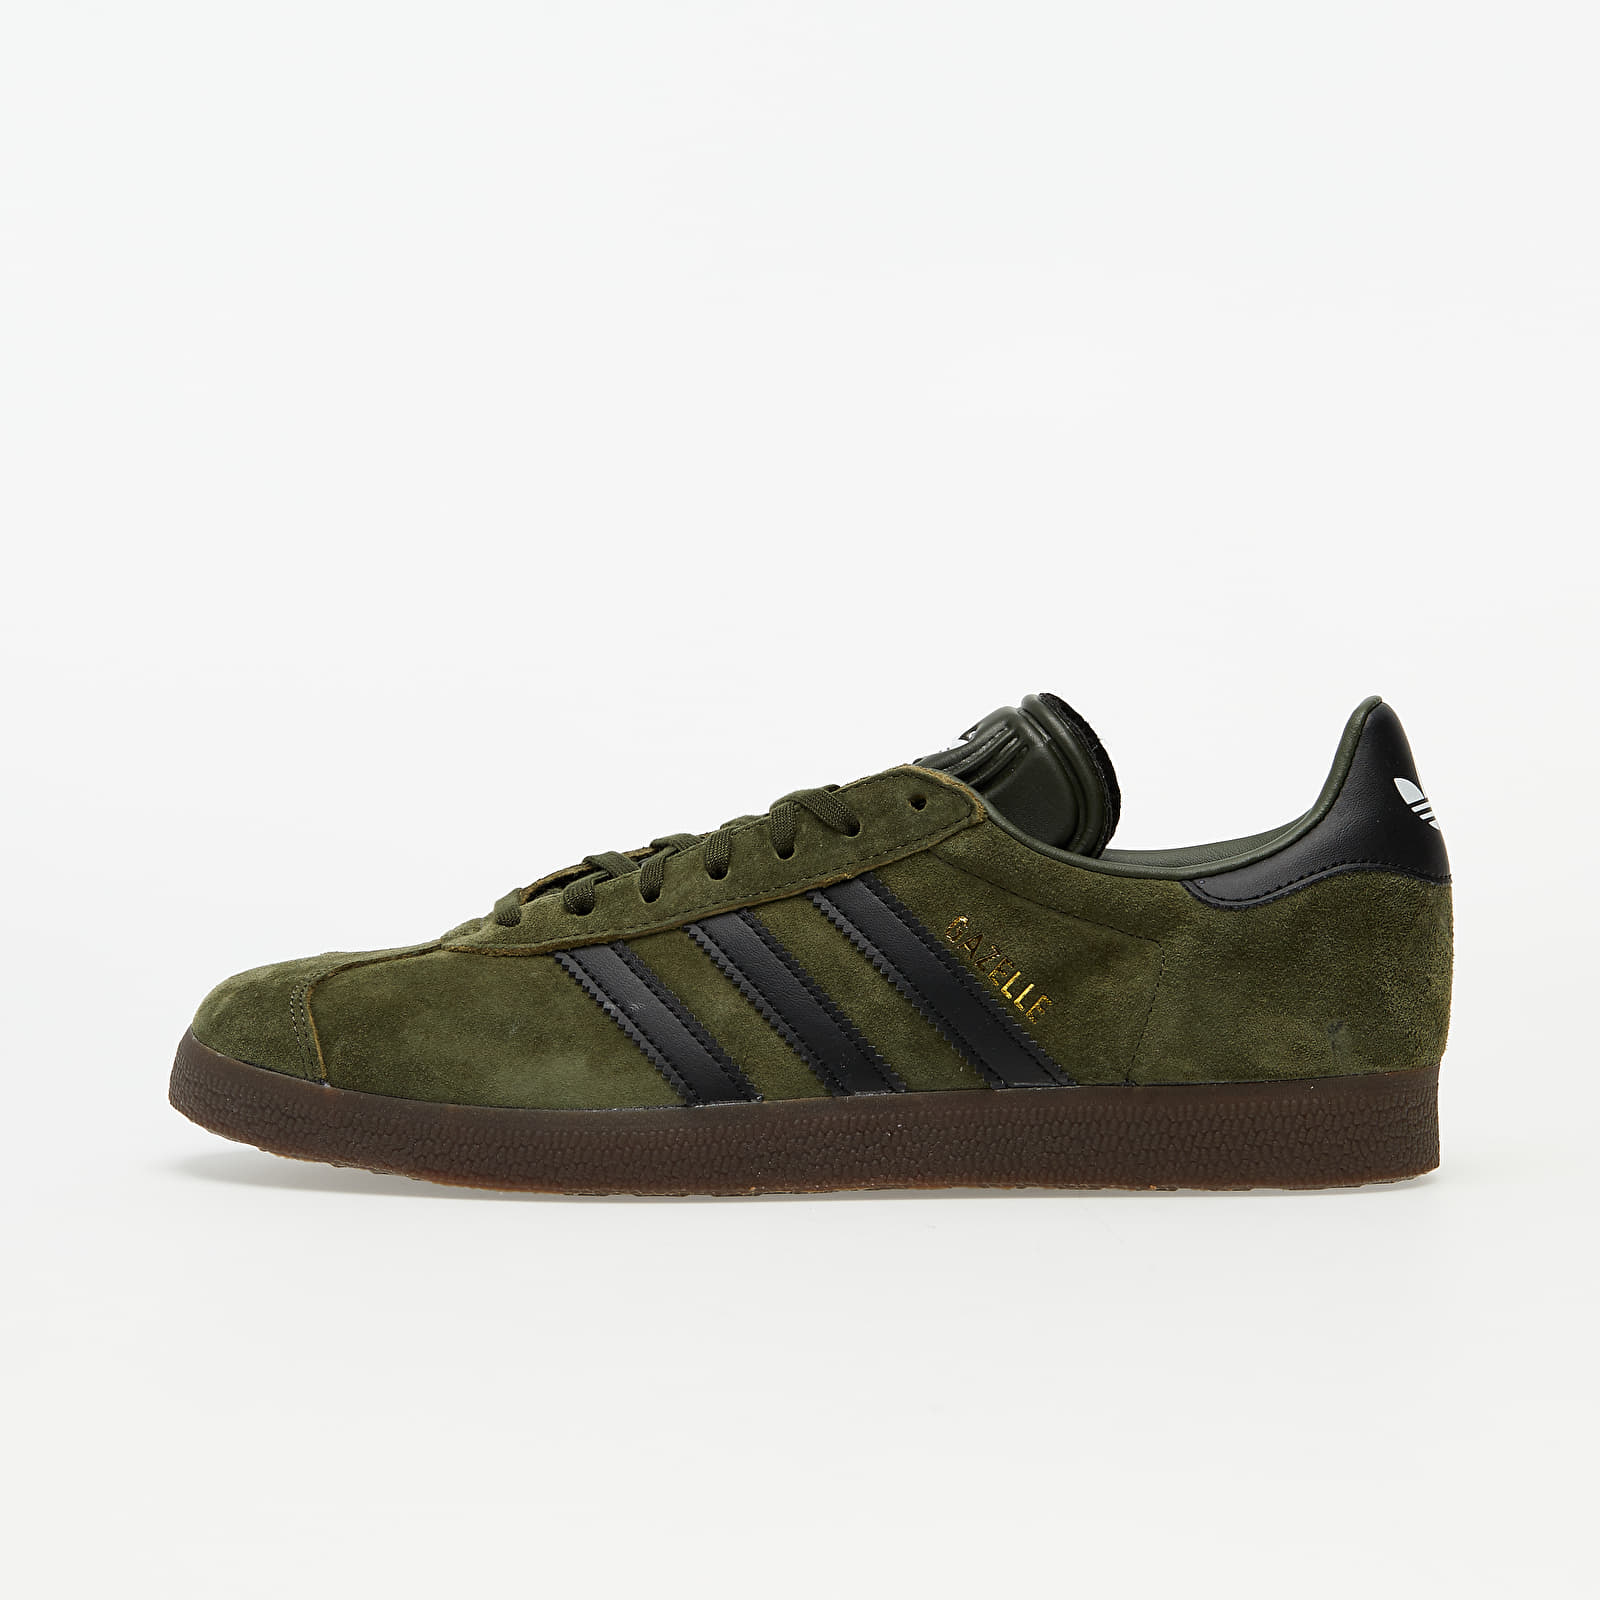 adidas Gazelle Night Cargo/ Core Black/ Gum 5 EUR 43 1/3